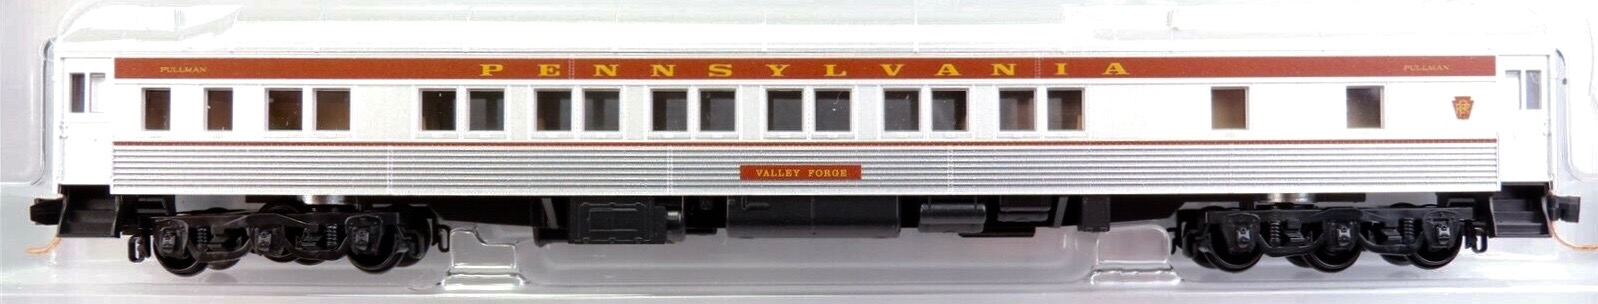 N Scale - RailSmith - NSE MTL 19-26 - Passenger Car, Lightweight, Pullman, Sleeper 10-6 - Pennsylvania - Valley Forge